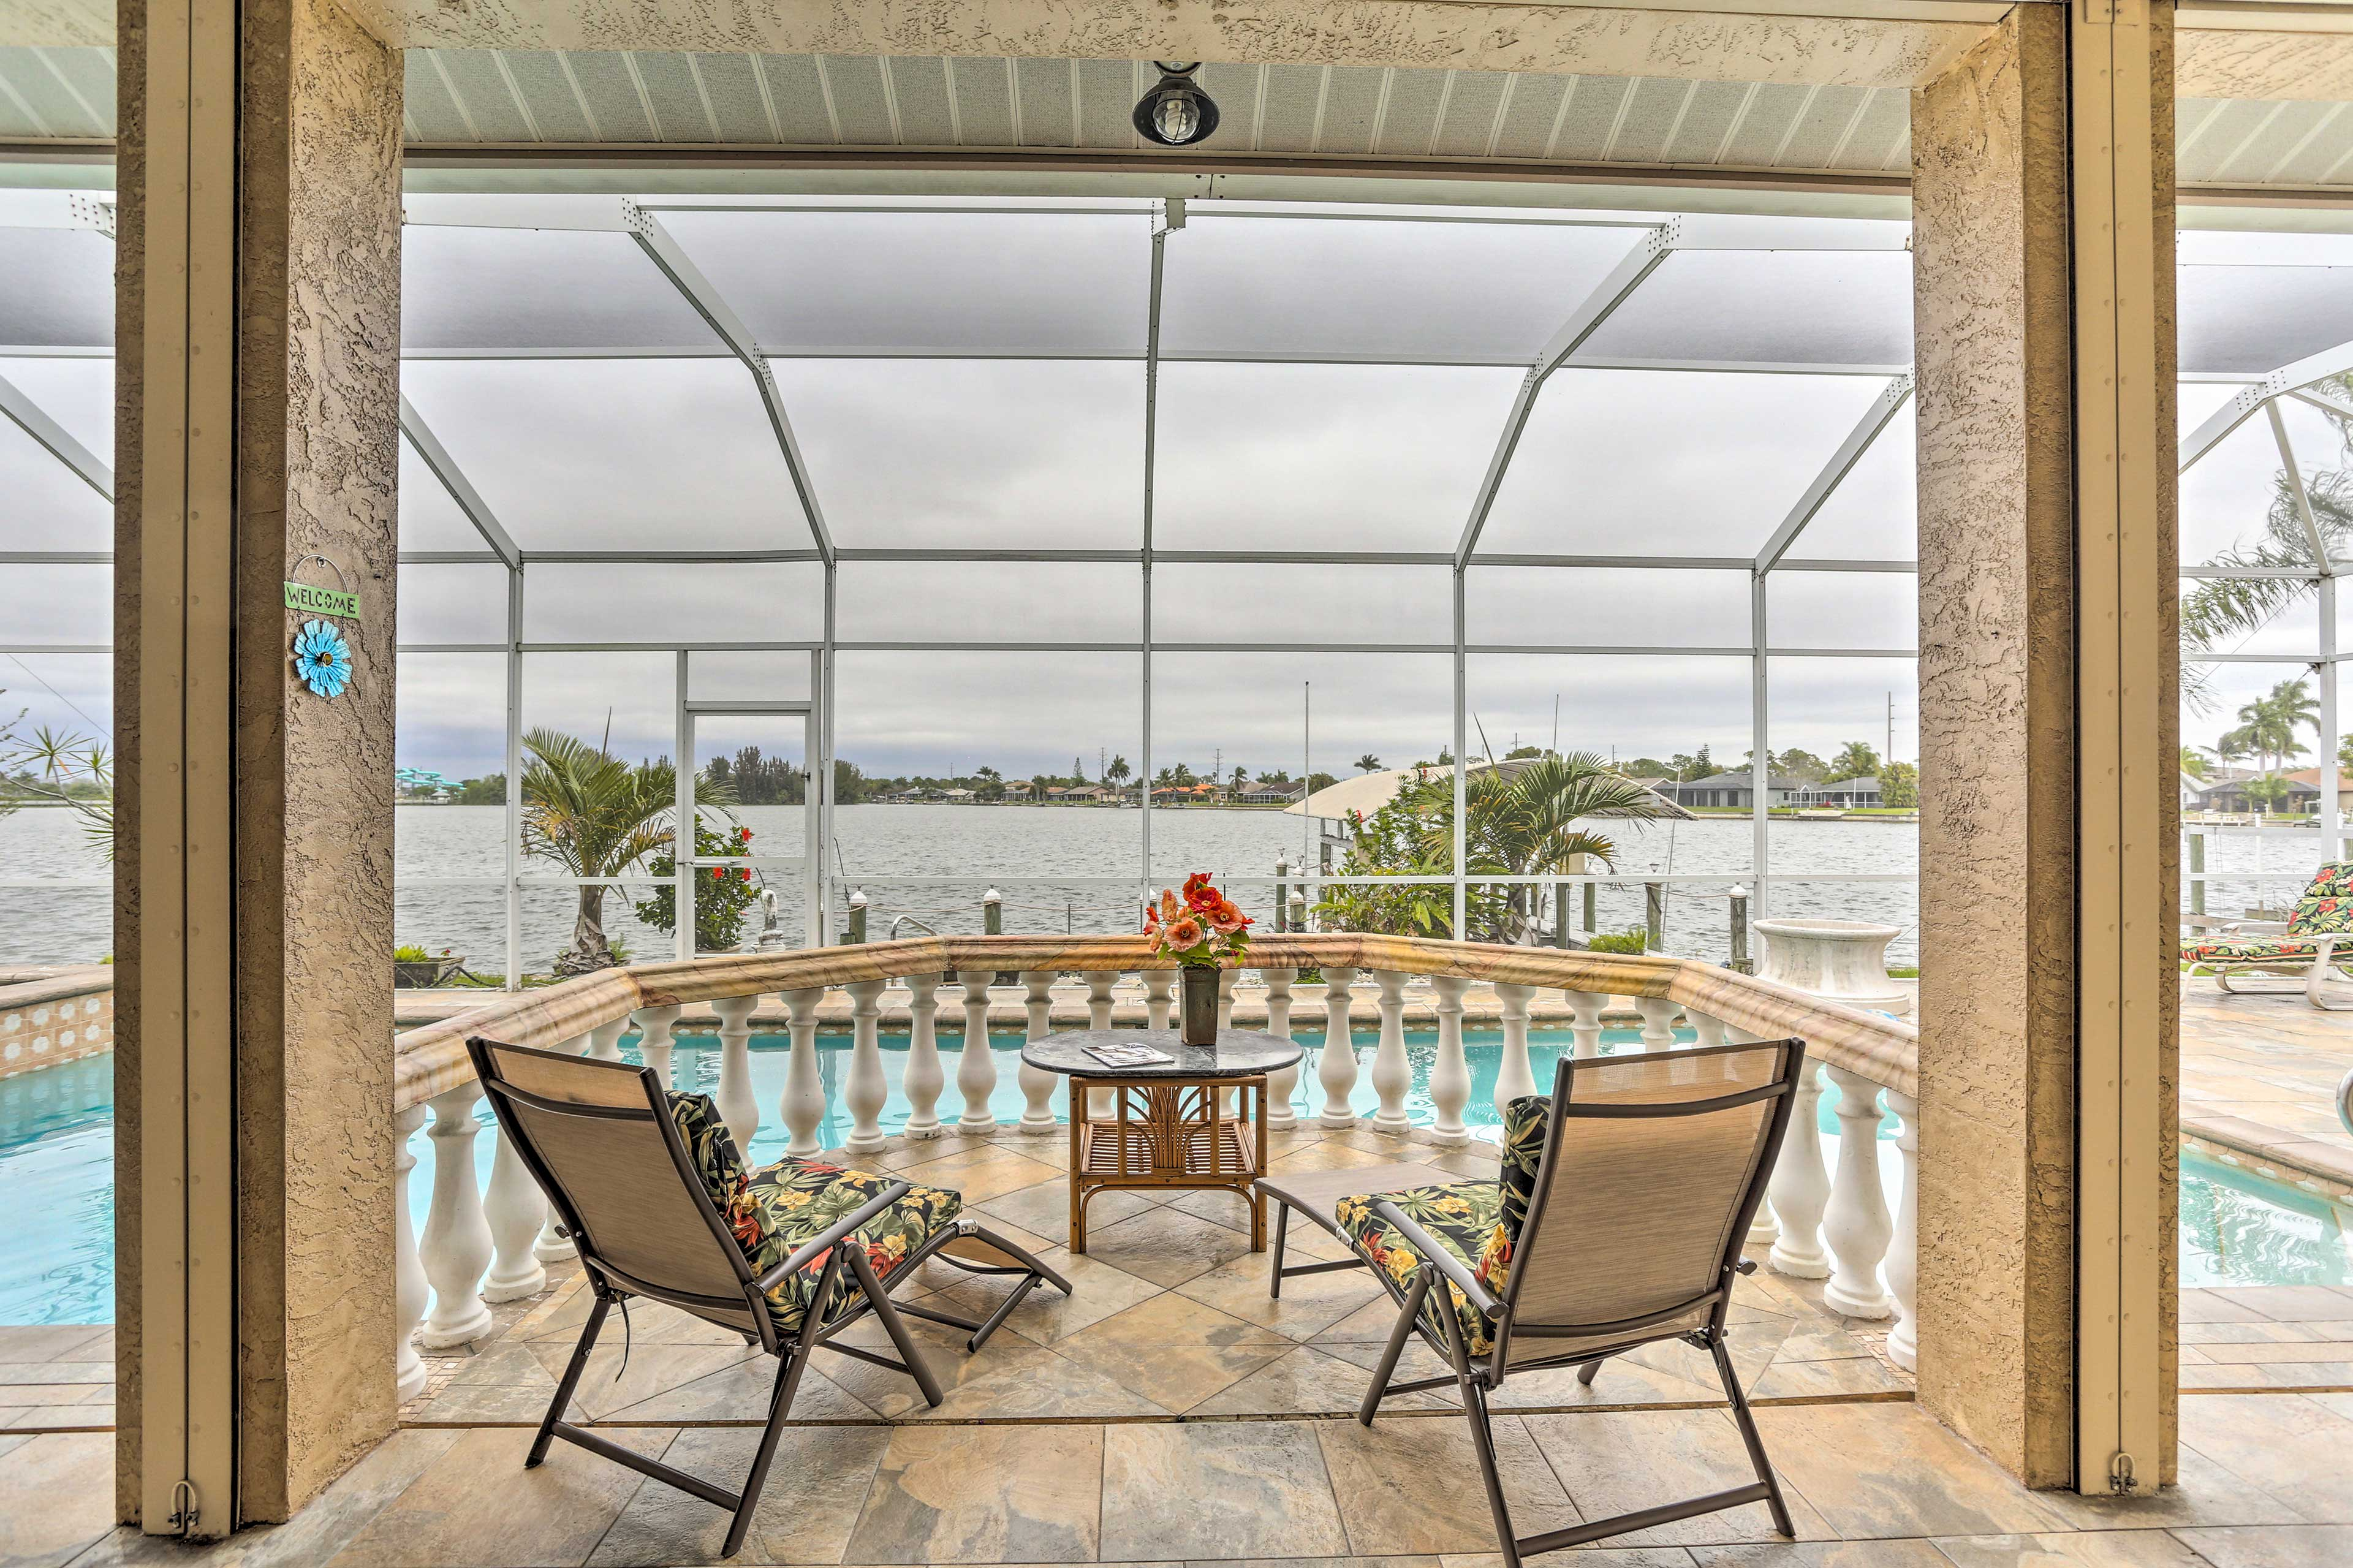 Settle into this Cape Coral vacation rental's waterfront saltwater pool!